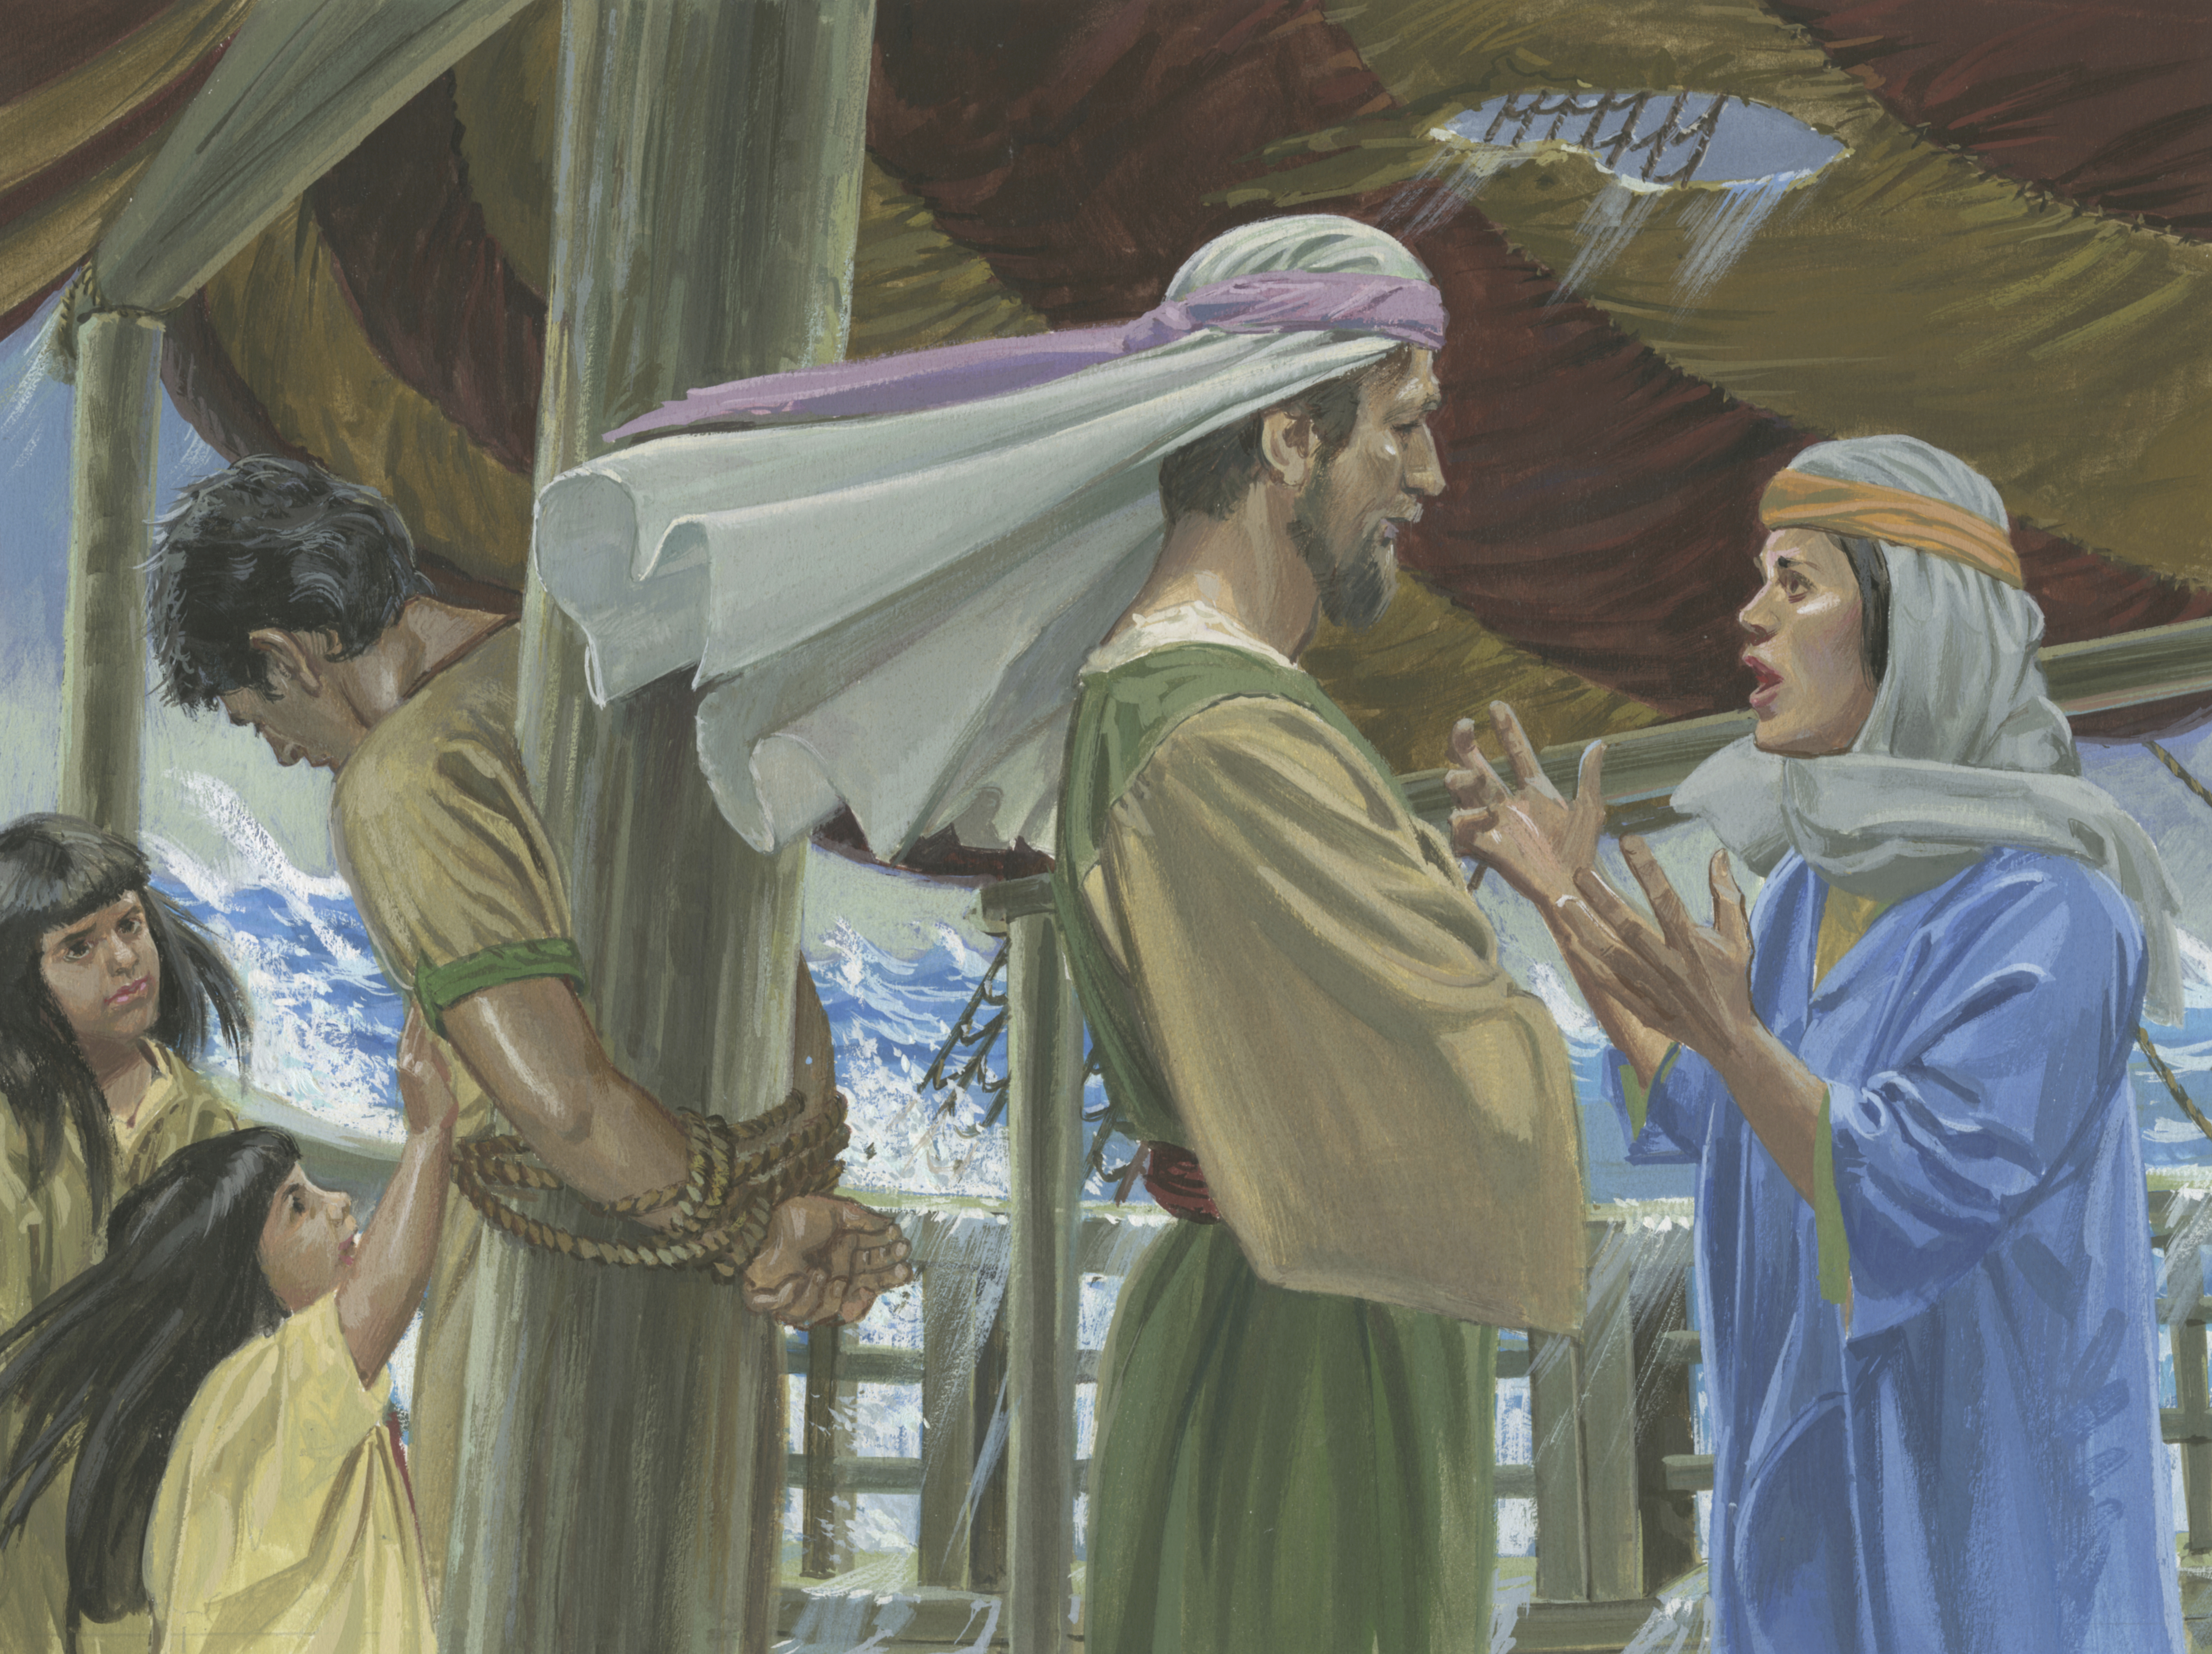 A painting by Jerry Thompson depicting Nephi tied up on the ship; Primary manual 4-19